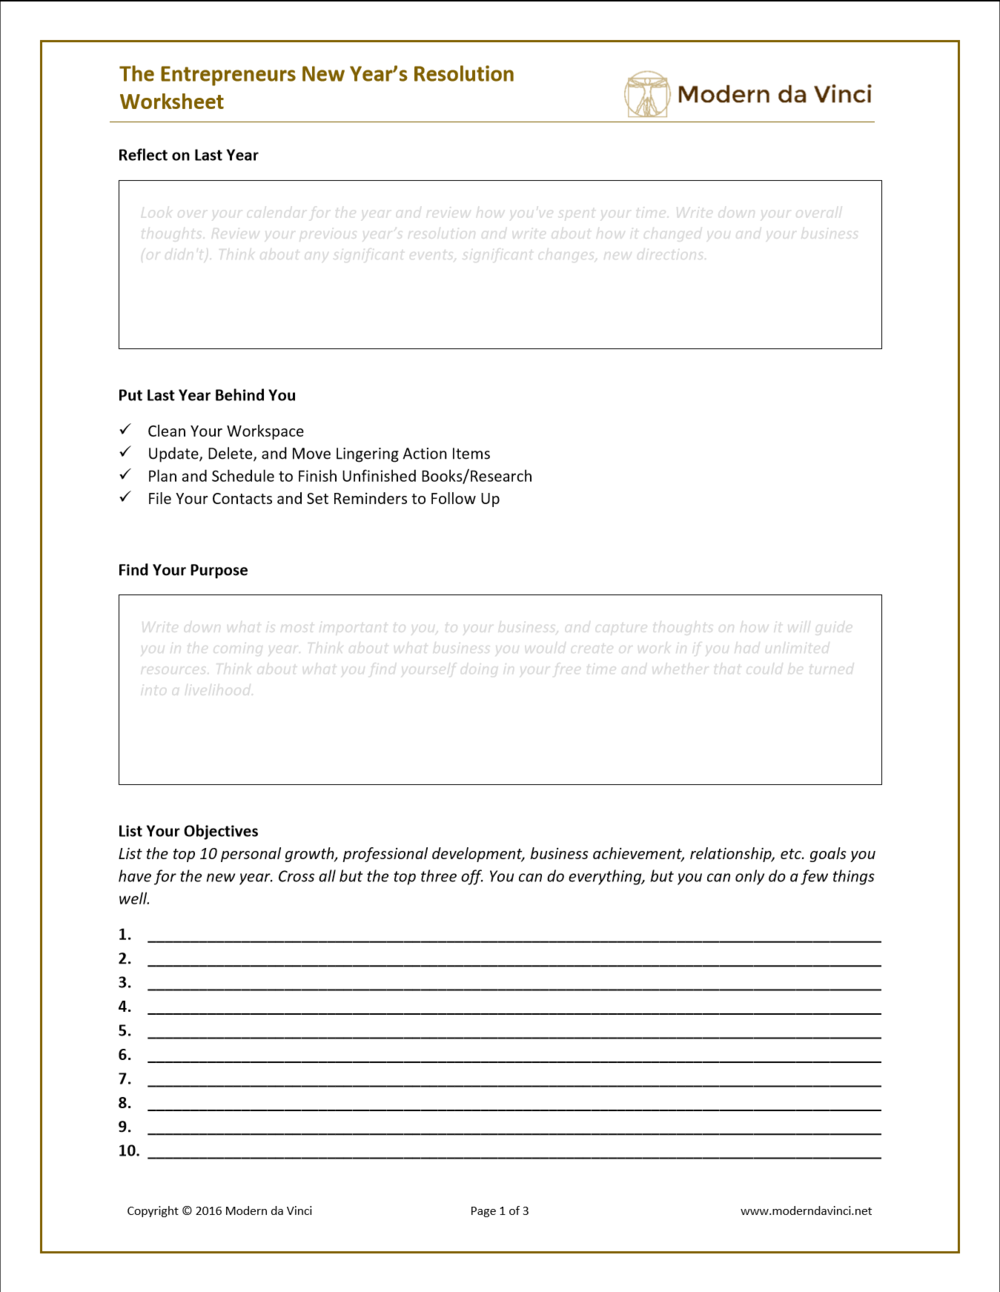 the entrepreneurs guide to new year s resolutions modern da vinci the entrepreneurs new years resolution worksheet will walk you through a process for reflecting on your